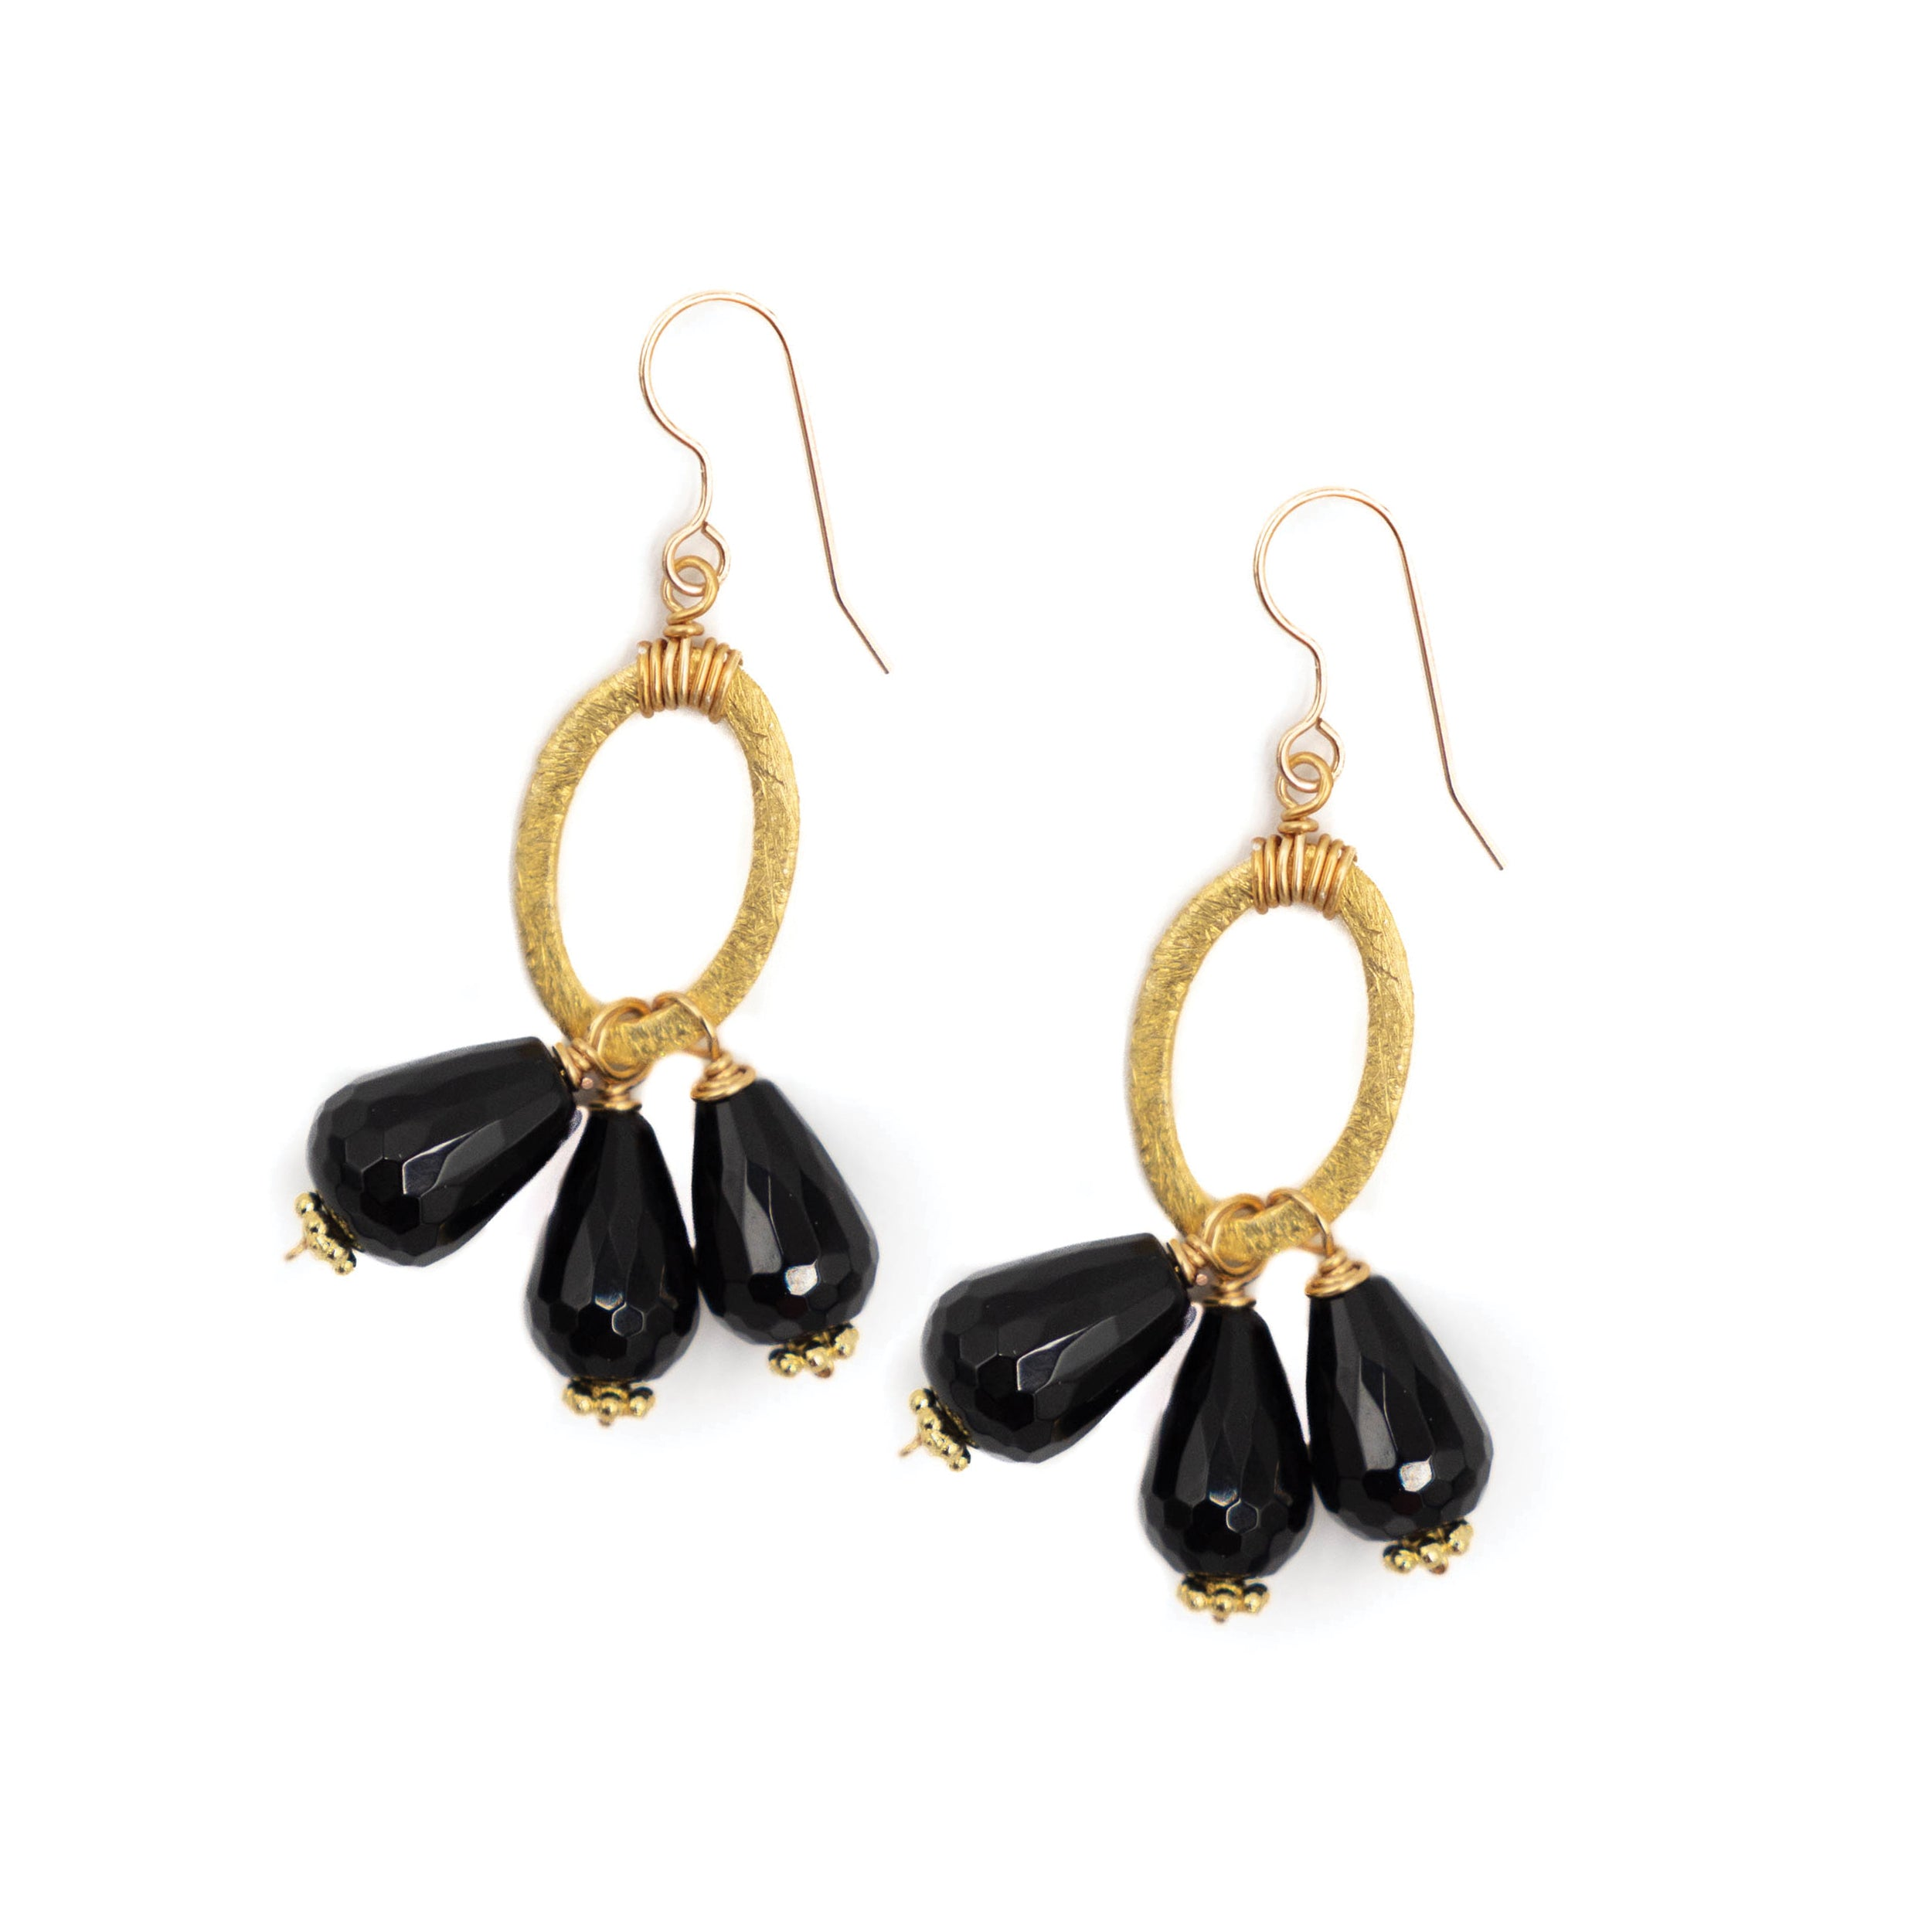 Amesbury Earring, Black Onyx, Small